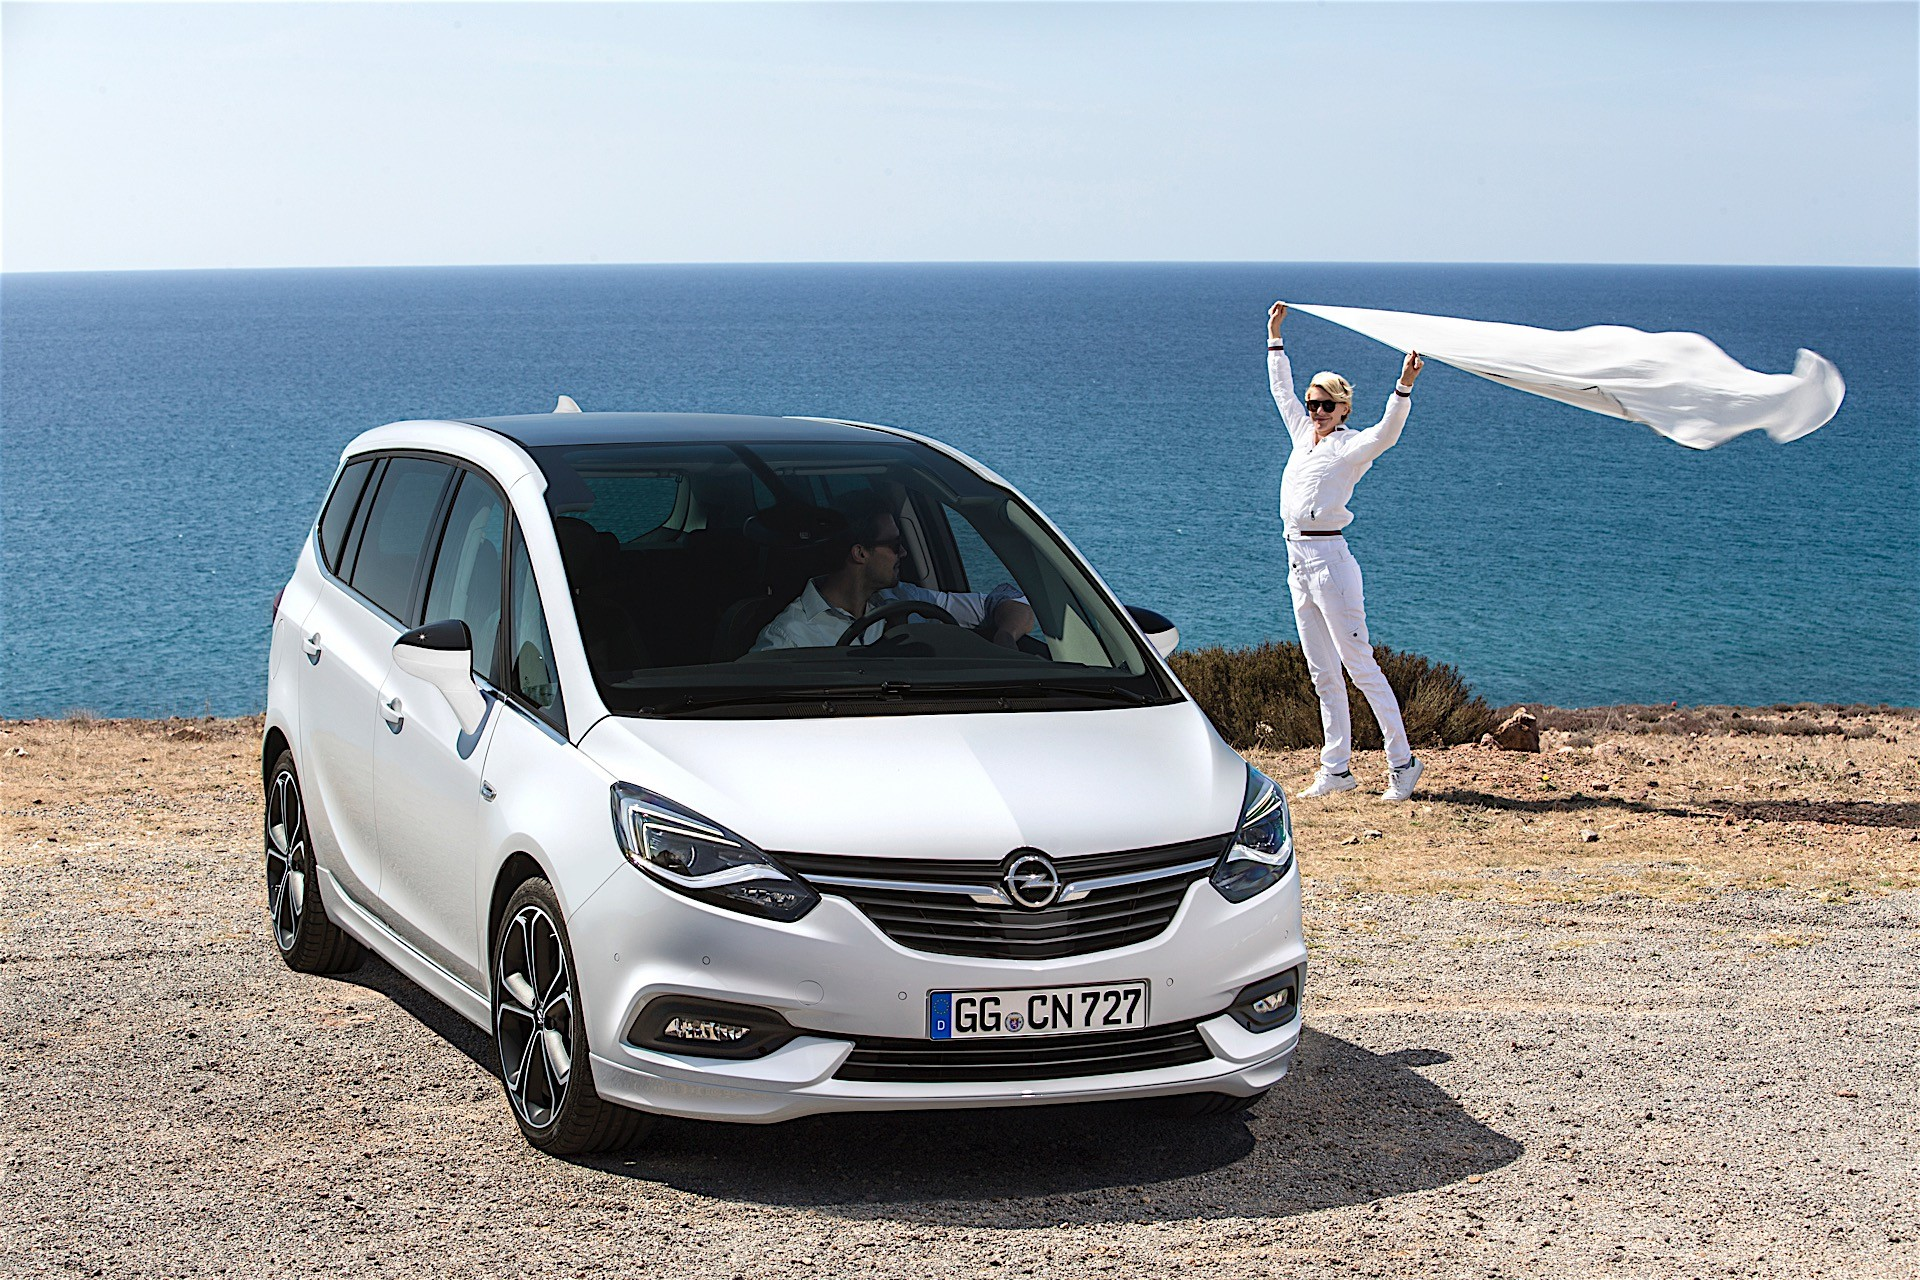 2017 Opel Zafira Production Begins In Russelsheim Plant